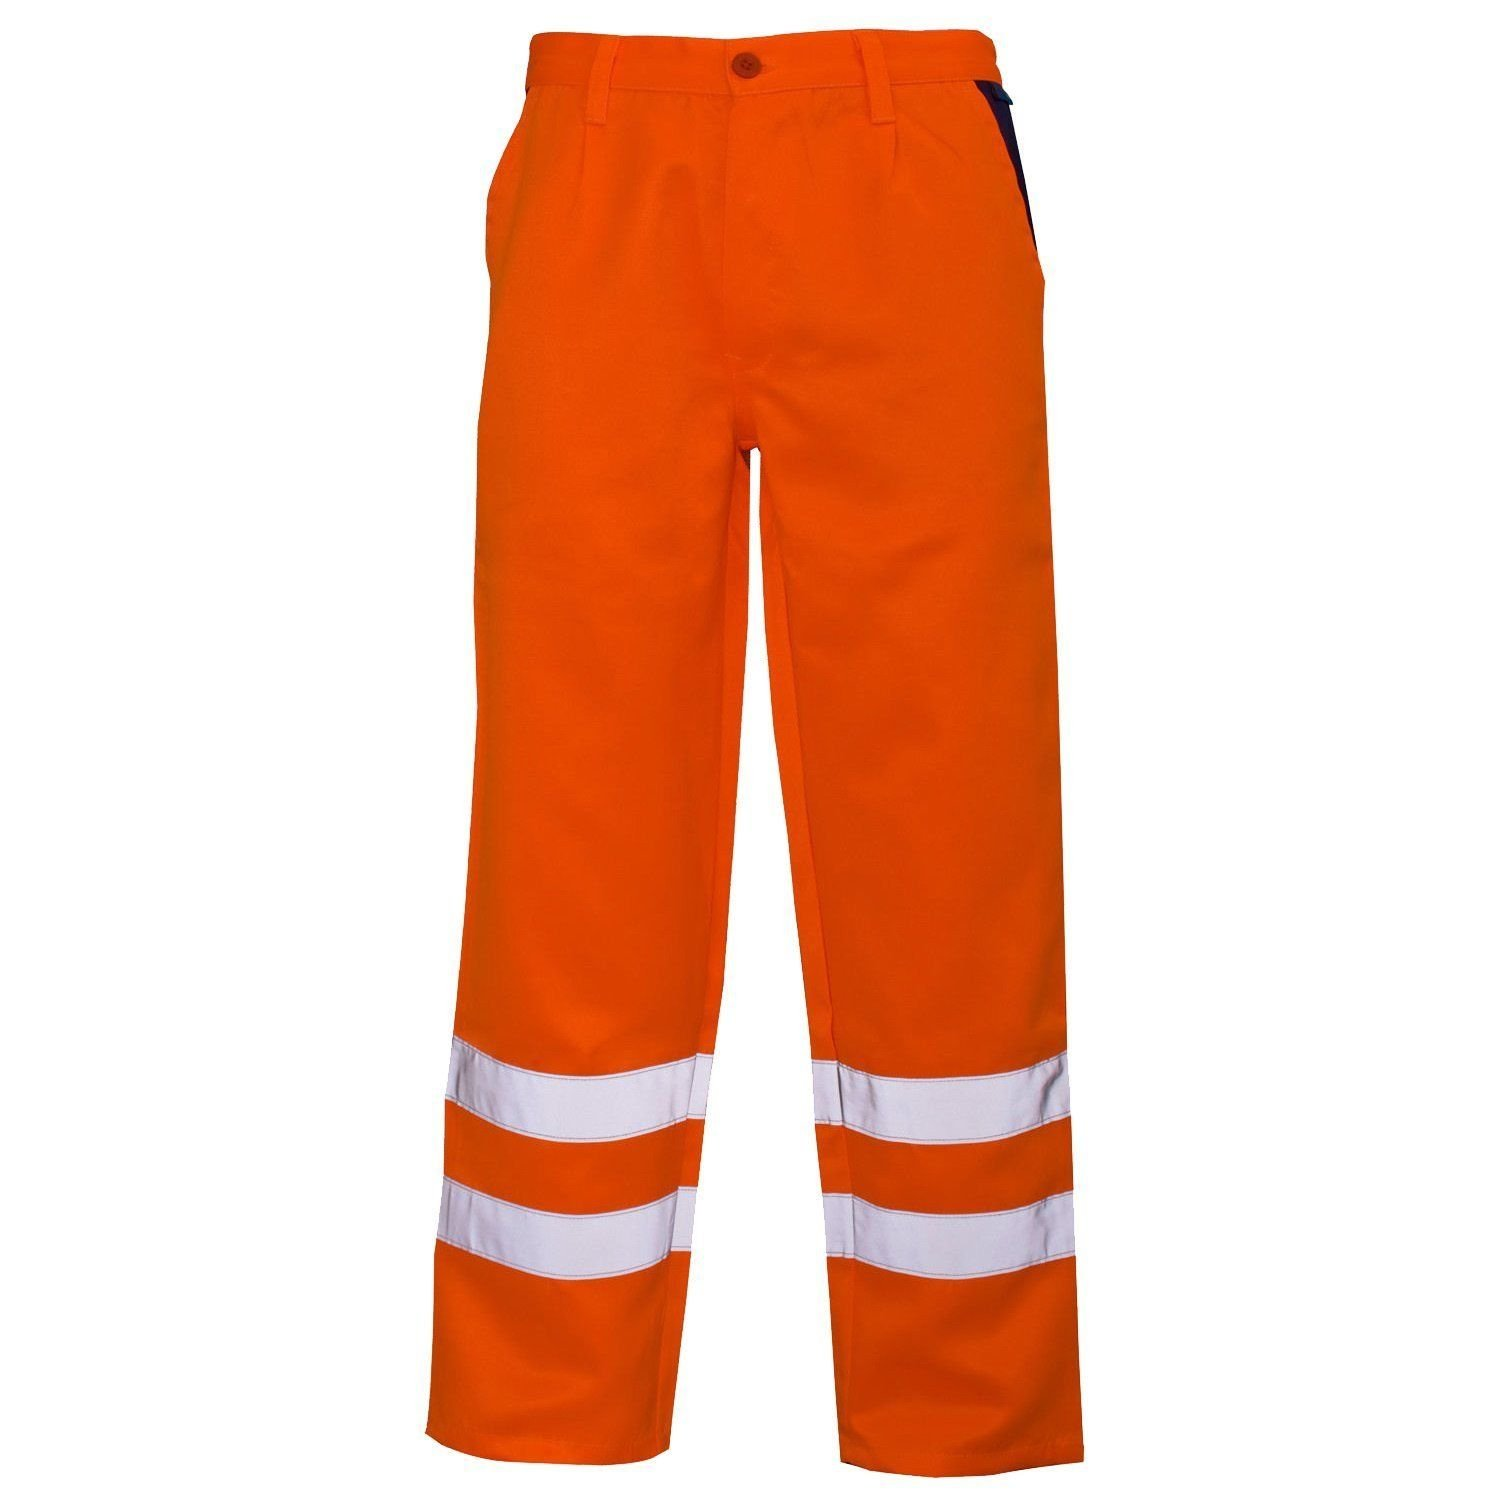 RIDDLED WITH STYLE Hi Viz Visibility Work Wear Cargo Railway Highway Trousers Pants